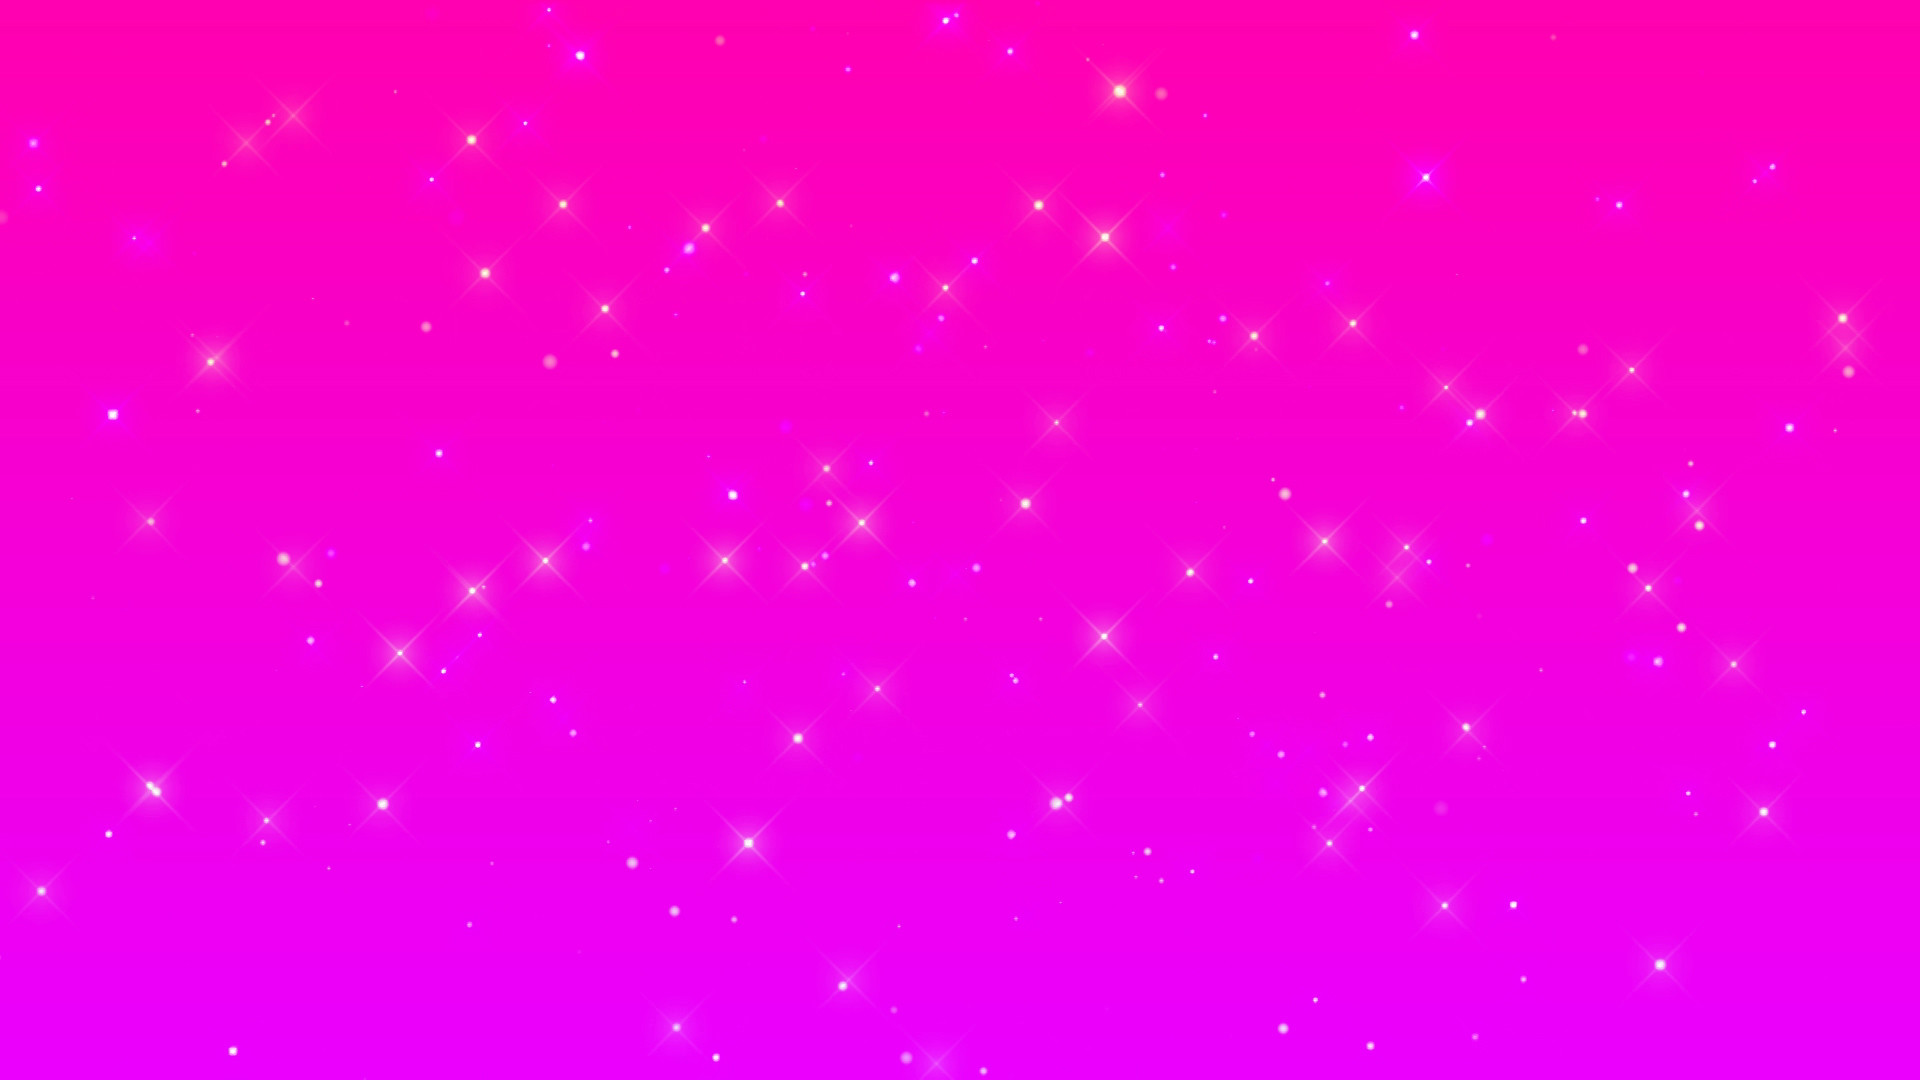 Res: 1920x1080, Plain Pink Wallpapers Background fannone Plain Pink Wallpapers High  Resolution fannone Plain Pink Wallpapers Full HD fannone Light Pink  Backgrounds ...